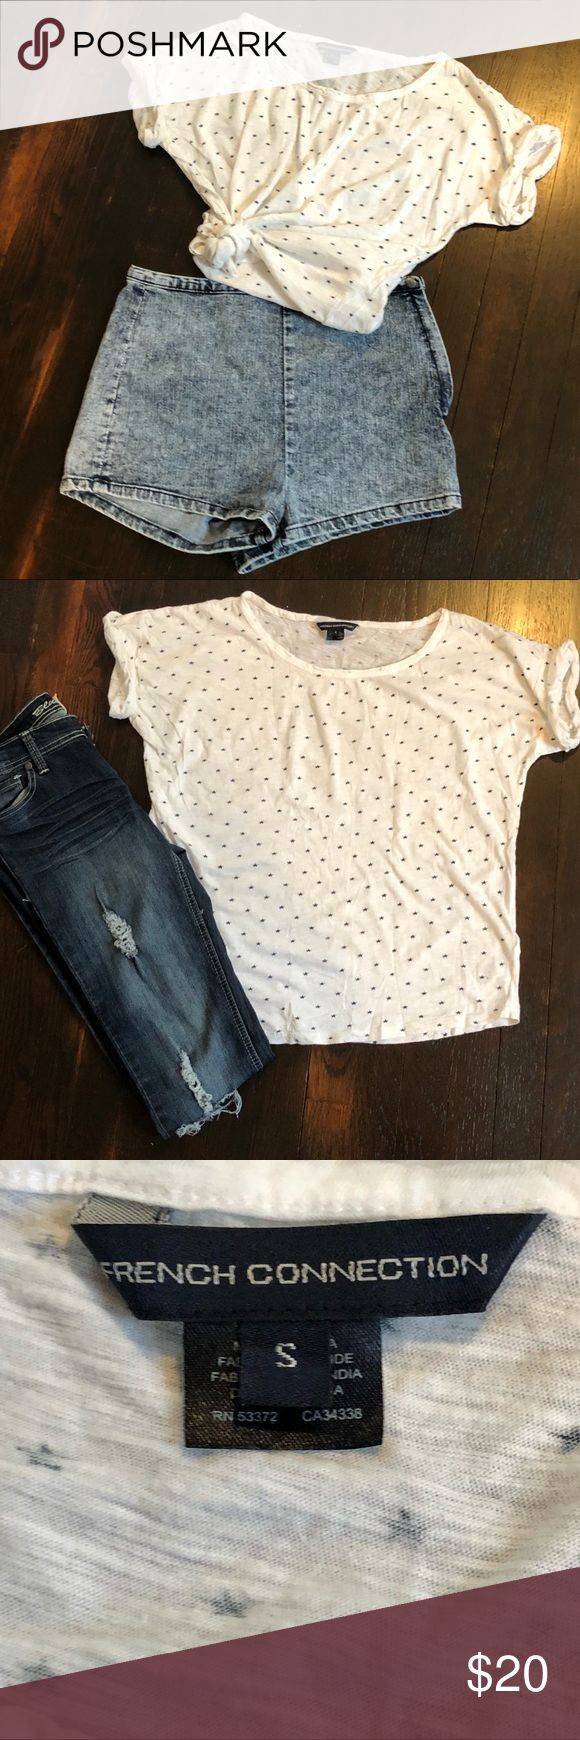 ⭐️French Connection star tshirt ⭐️French Connection star T-shirt (S)  ⭐️Scoop neck, folded cap sleeves, over size fit ⭐️white shirt with tiny navy blue star pattern ⭐️Can be worn multiple ways- tied up as a crop top, or loose and comfy with jeans! Pair with a matching denim jacket for a put together look! ⭐️Perfect for the 4th of July! ⭐️Open to offers! French Connection Tops Tees - Short Sleeve